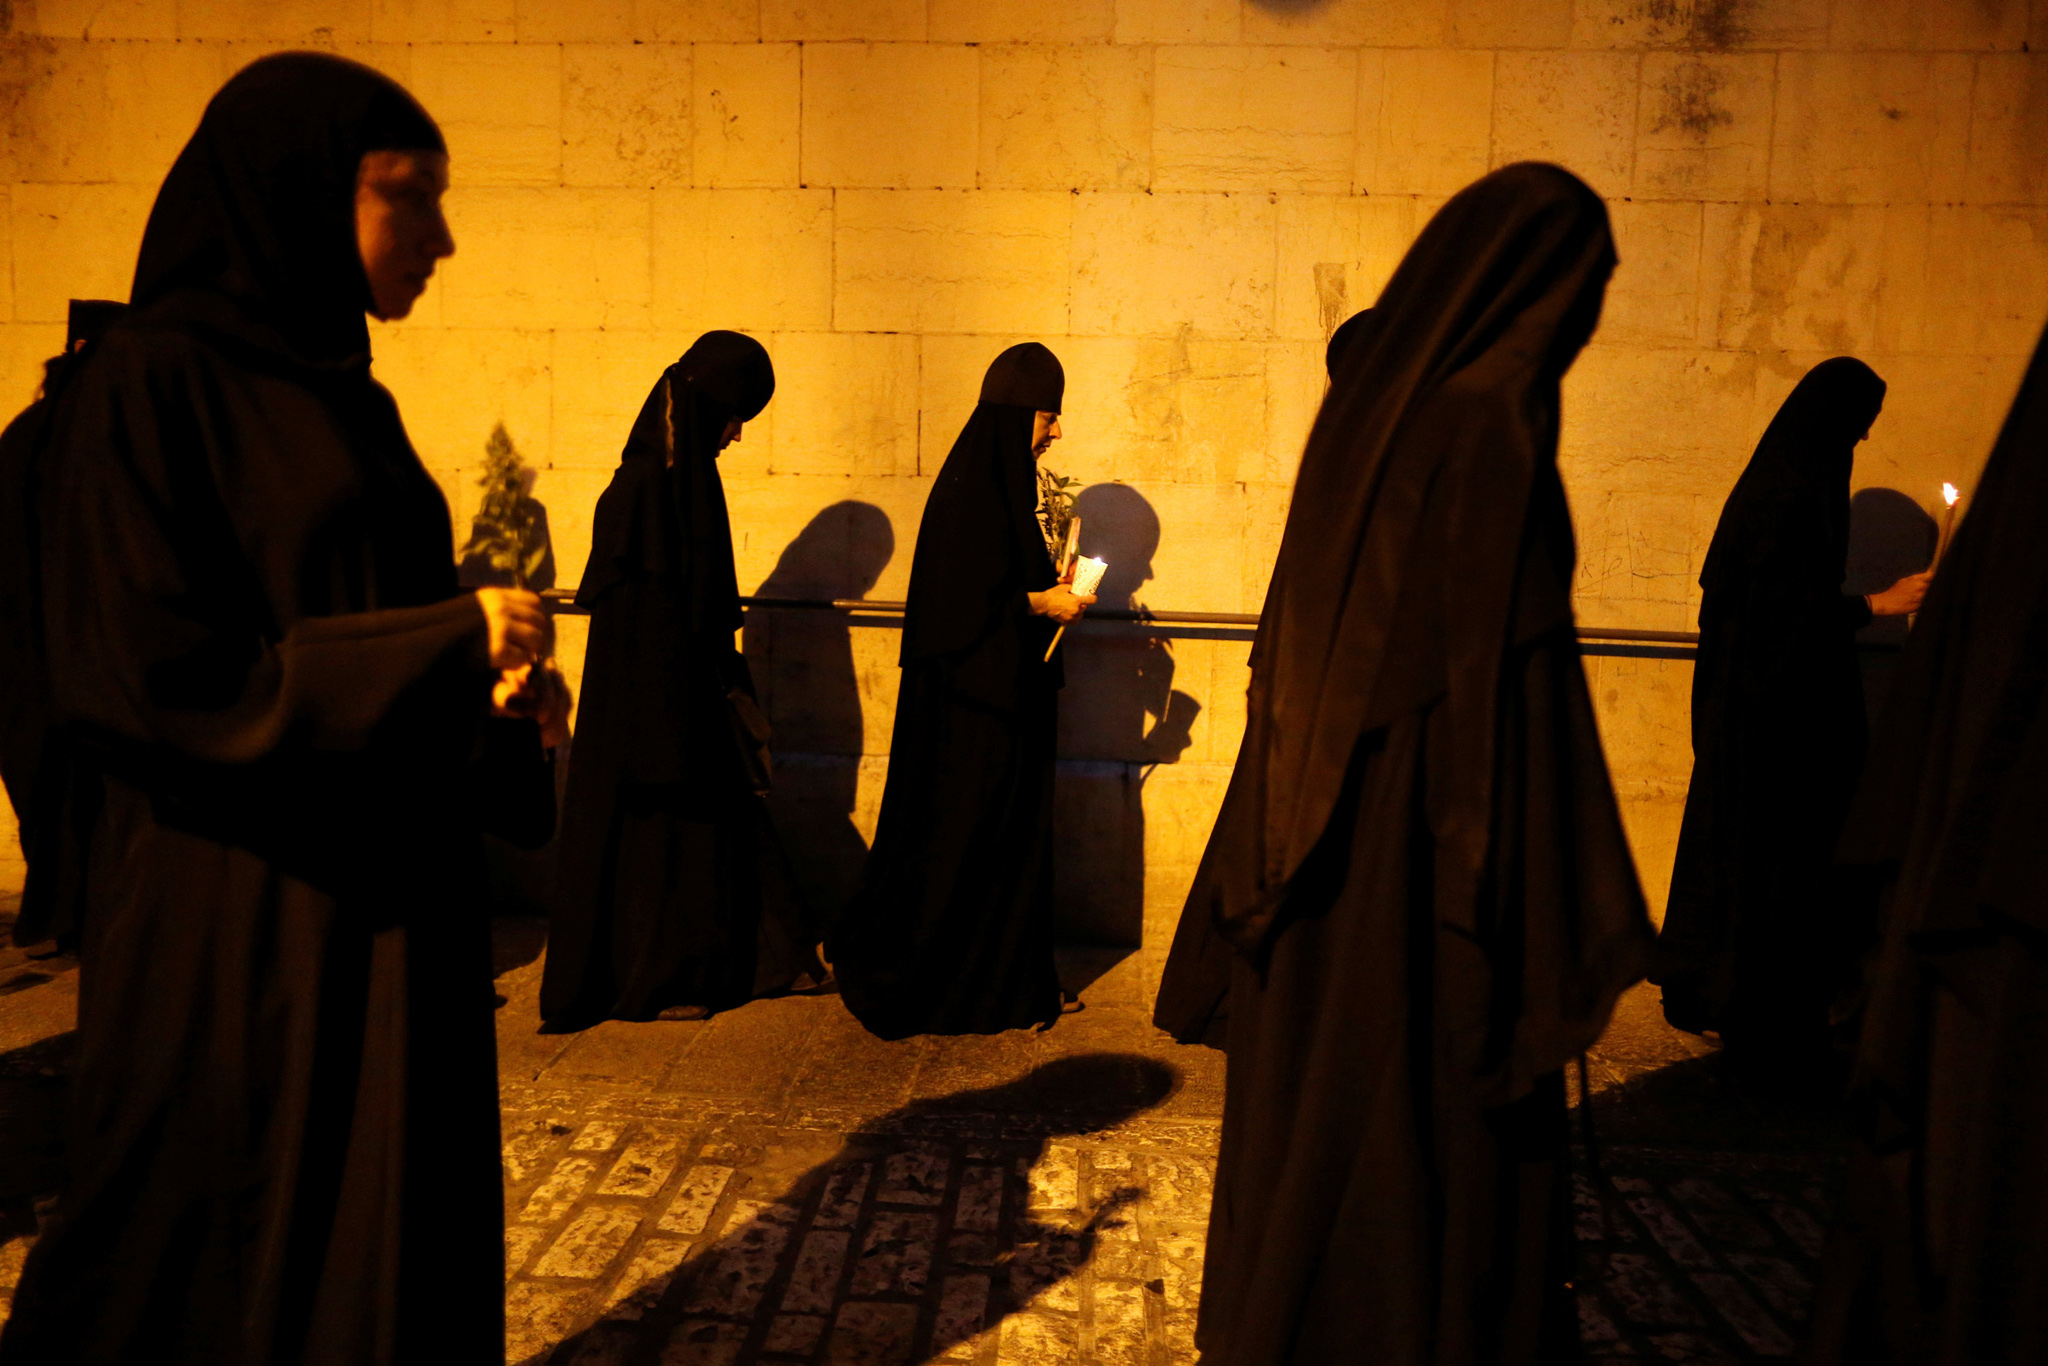 Orthodox Christian nuns take part in an annual procession along the Via Dolorosa in Jerusalem's Old City, during which an icon of the Virgin Mary is carried from the Church of the Holy Sepulchre to a church at the foot of the Mount of Olives, the location believed by Christians to be that of the tomb of the Virgin Mary